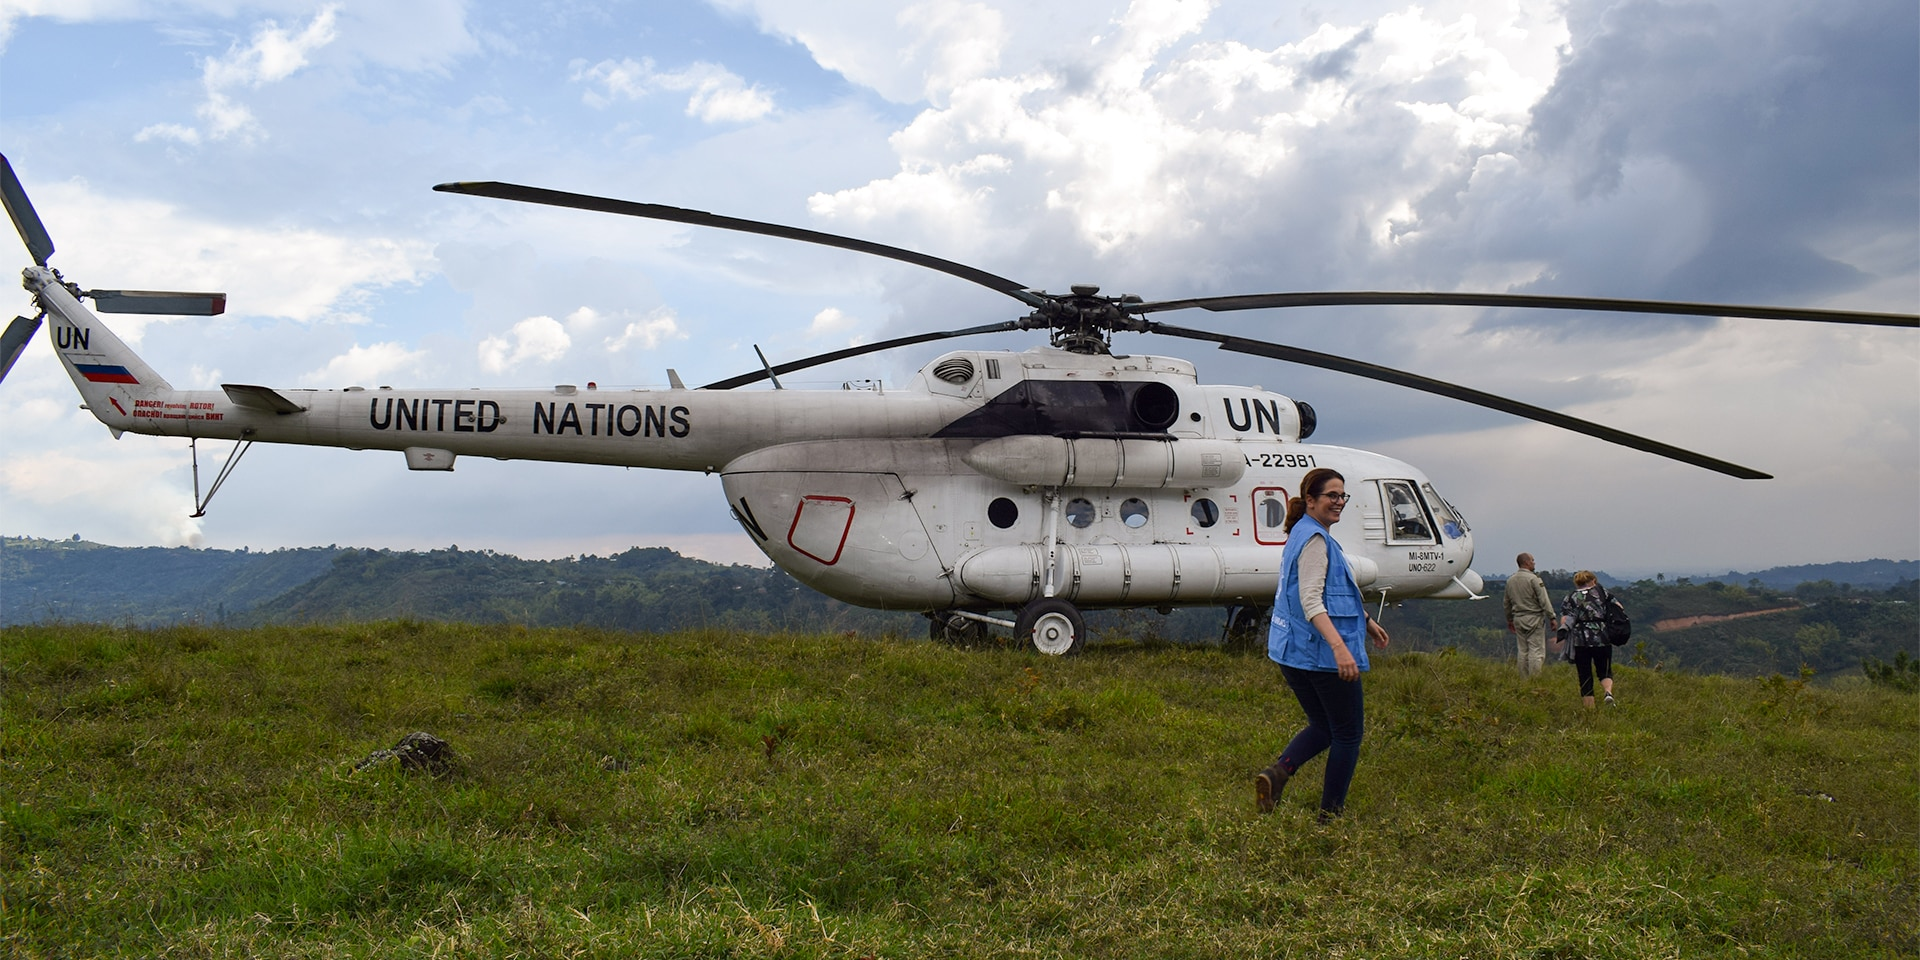 Natalie Kohli in front of a UN helicopter standing on a green lawn.